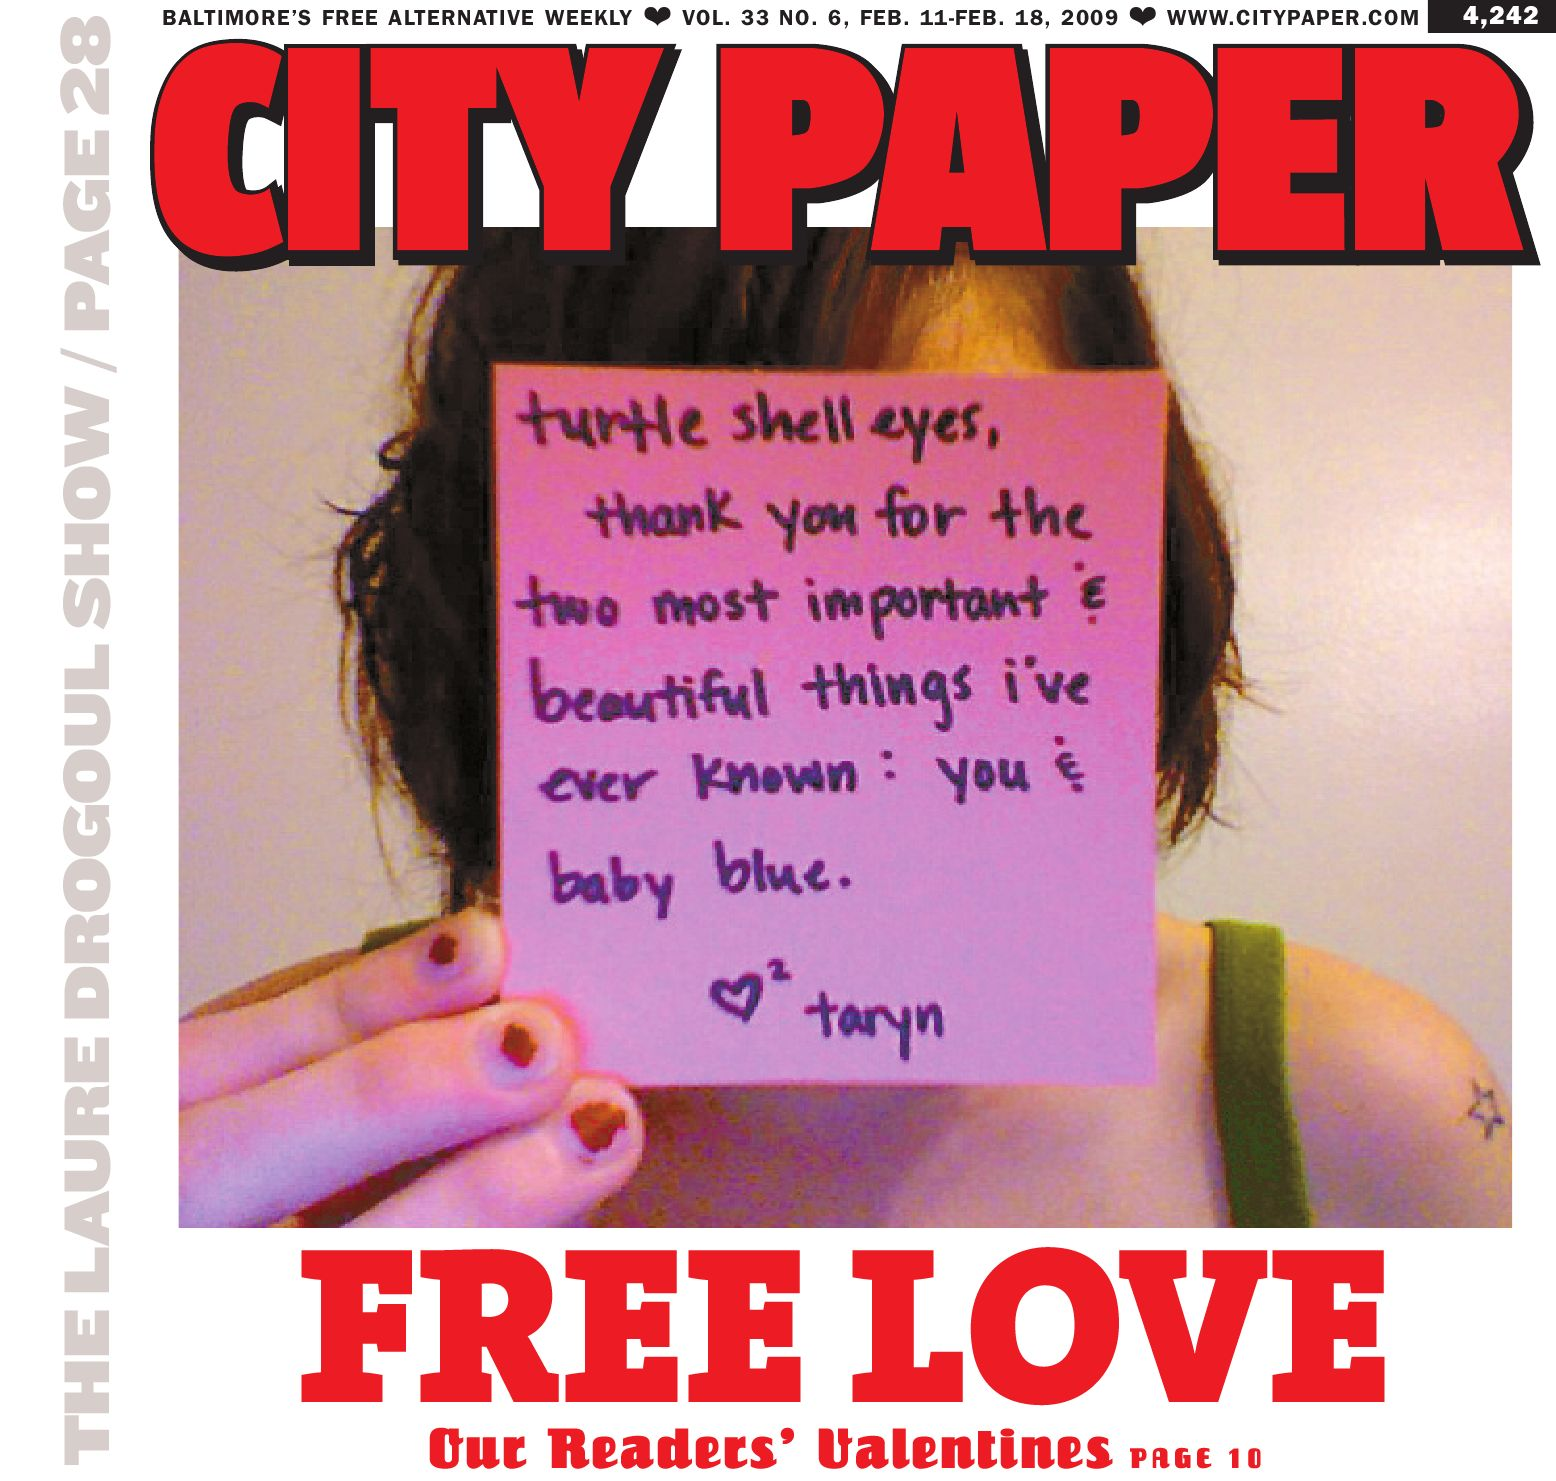 Baltimore City Paper, Vol. 33, No. 6 by Baltimore City Paper ... on